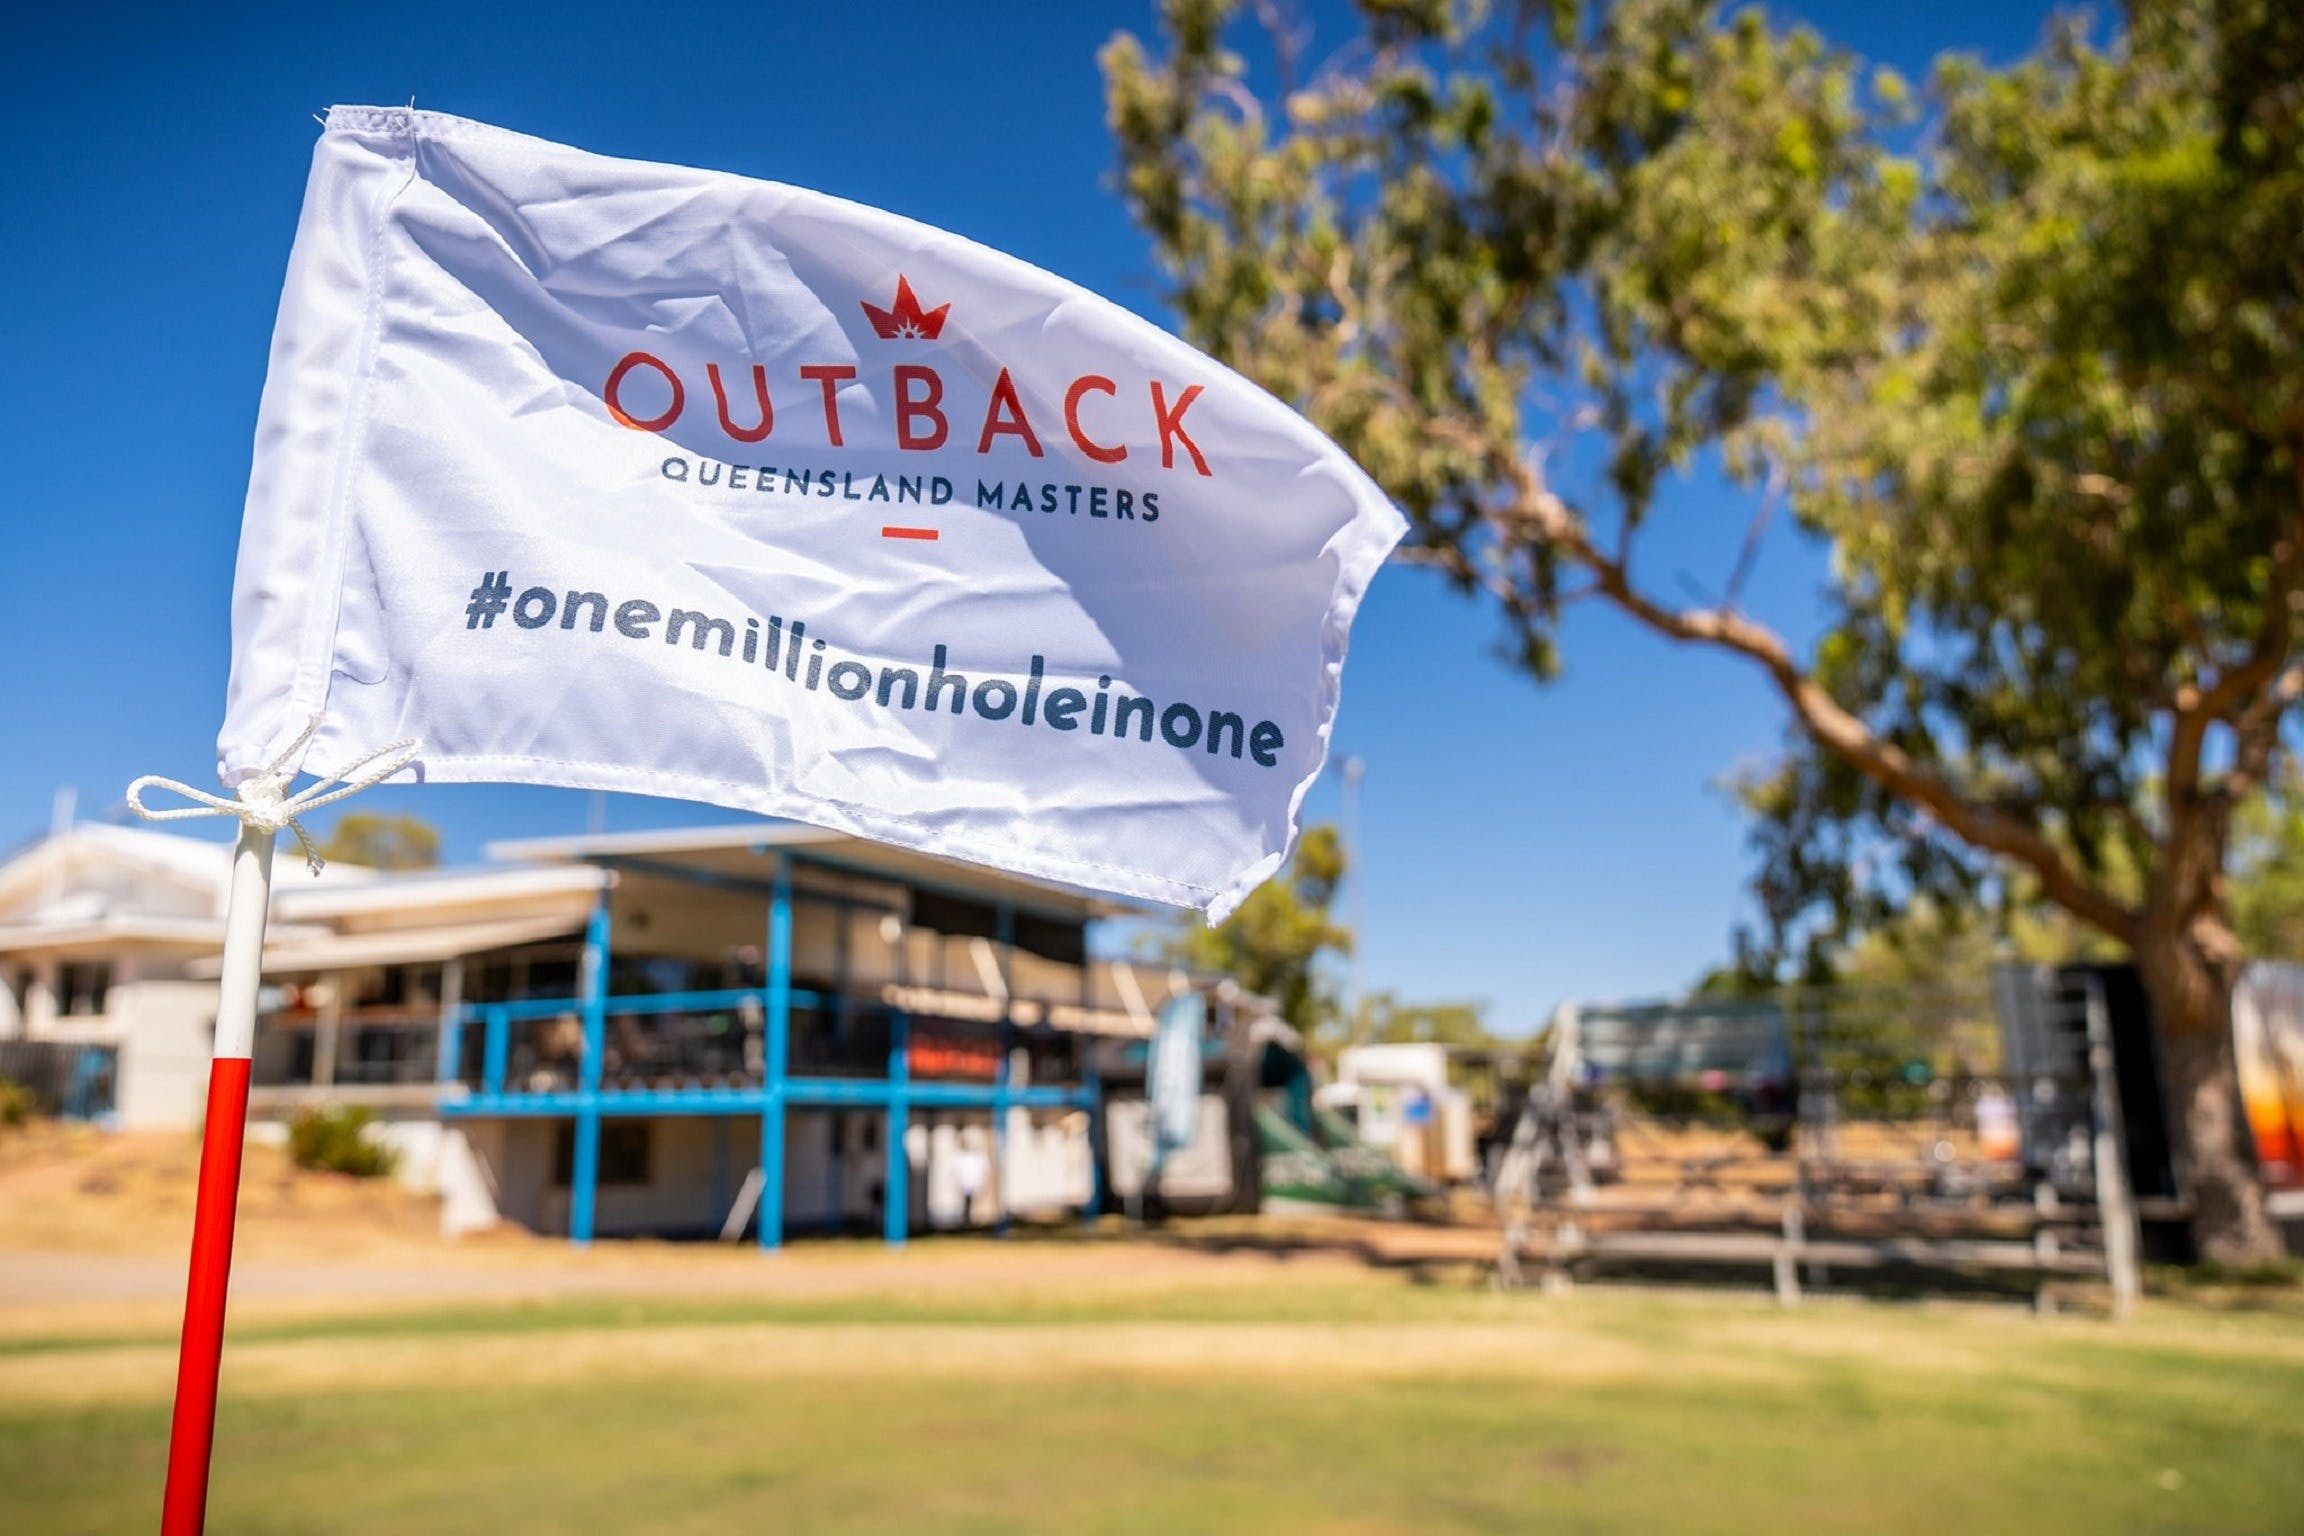 Outback Queensland Masters Charleville Leg 2021 - Newcastle Accommodation